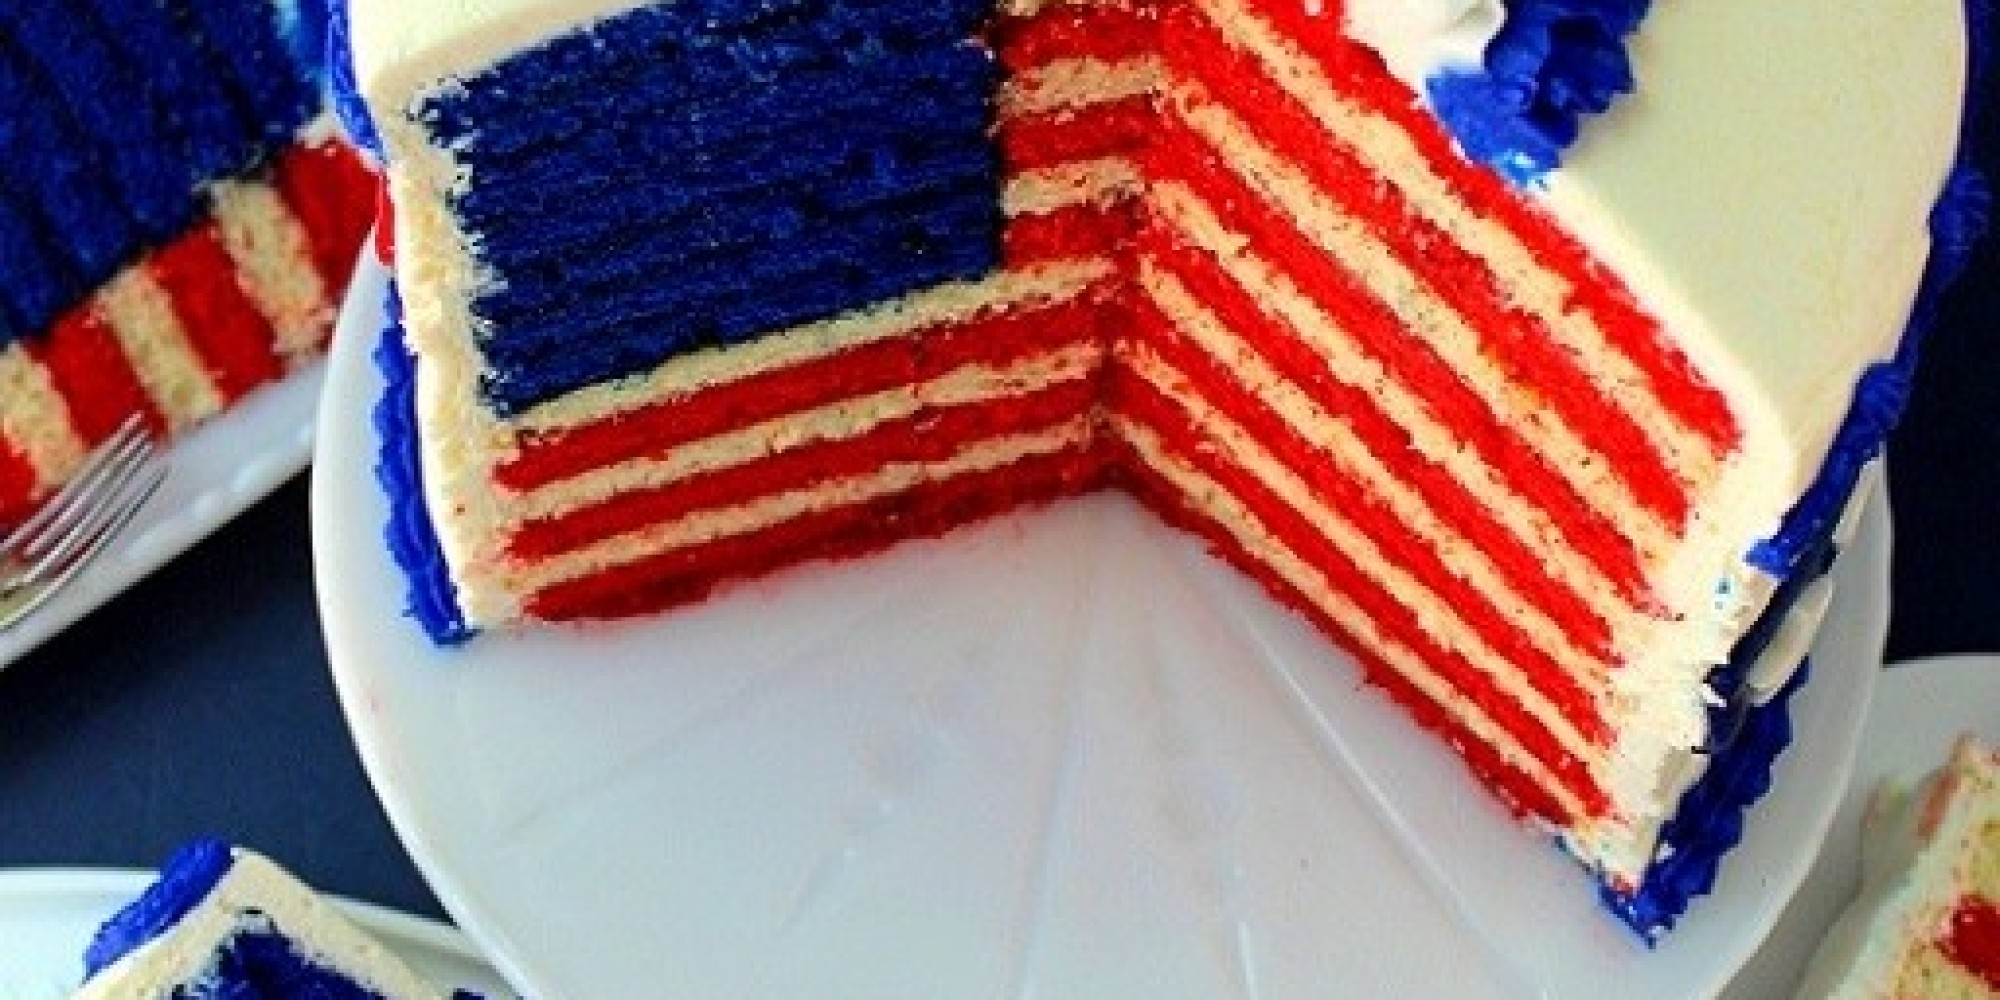 The Flag Cake Recipe To End All Flag Cakes | The Huffington Post